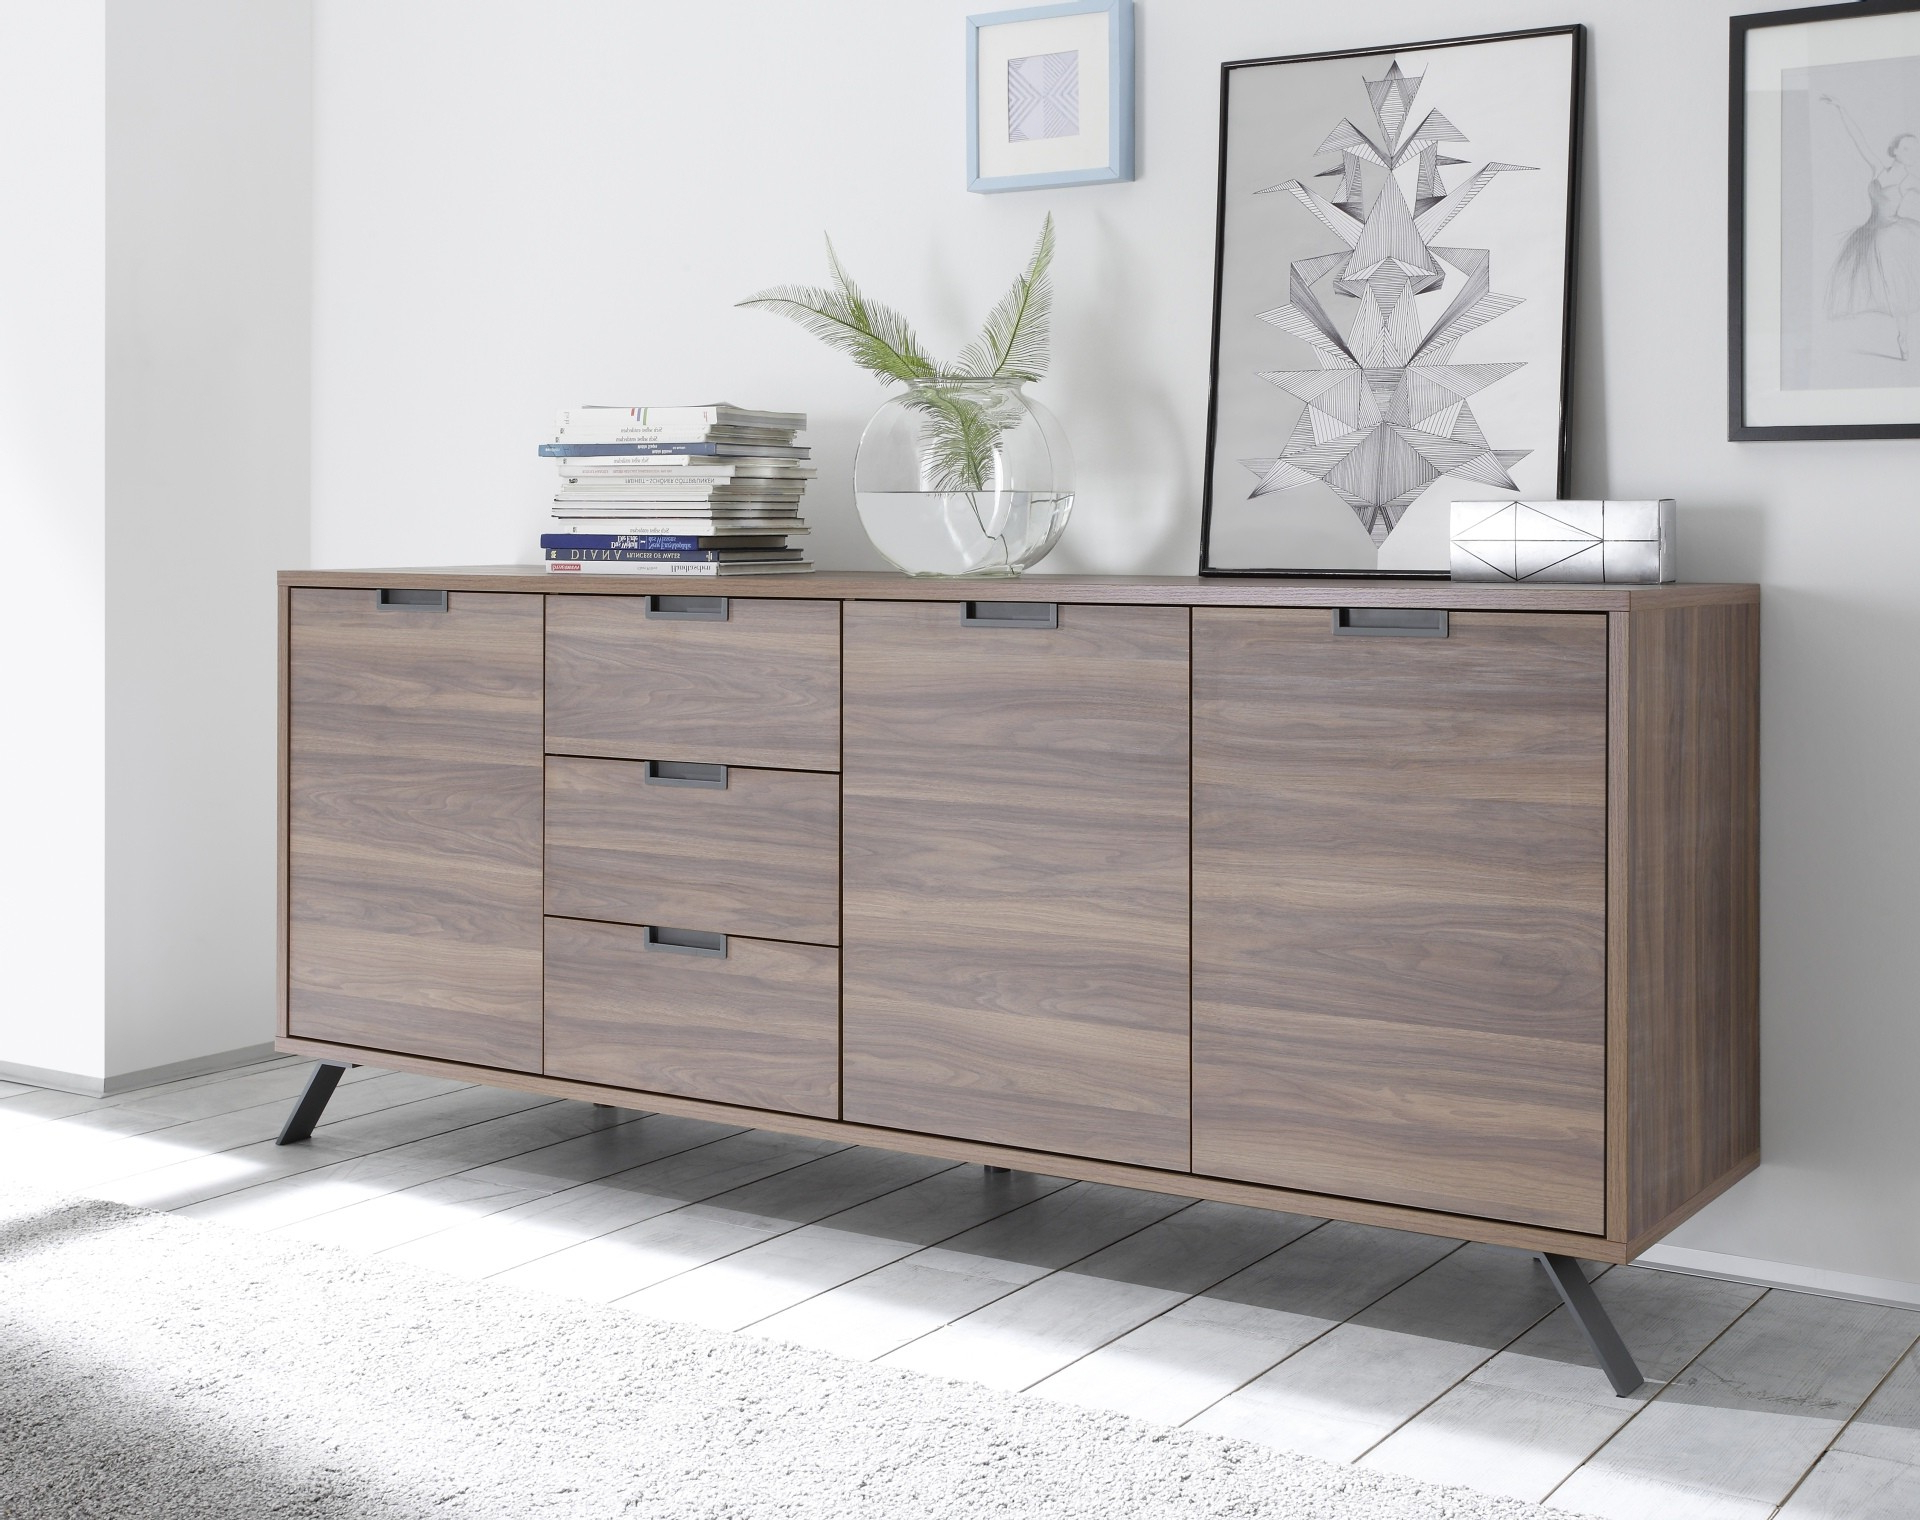 Parma Dark Walnut 3 Door Sideboard – Sideboards (1812) – Sena Home Intended For Most Popular Walnut Finish 4 Door Sideboards (View 11 of 20)